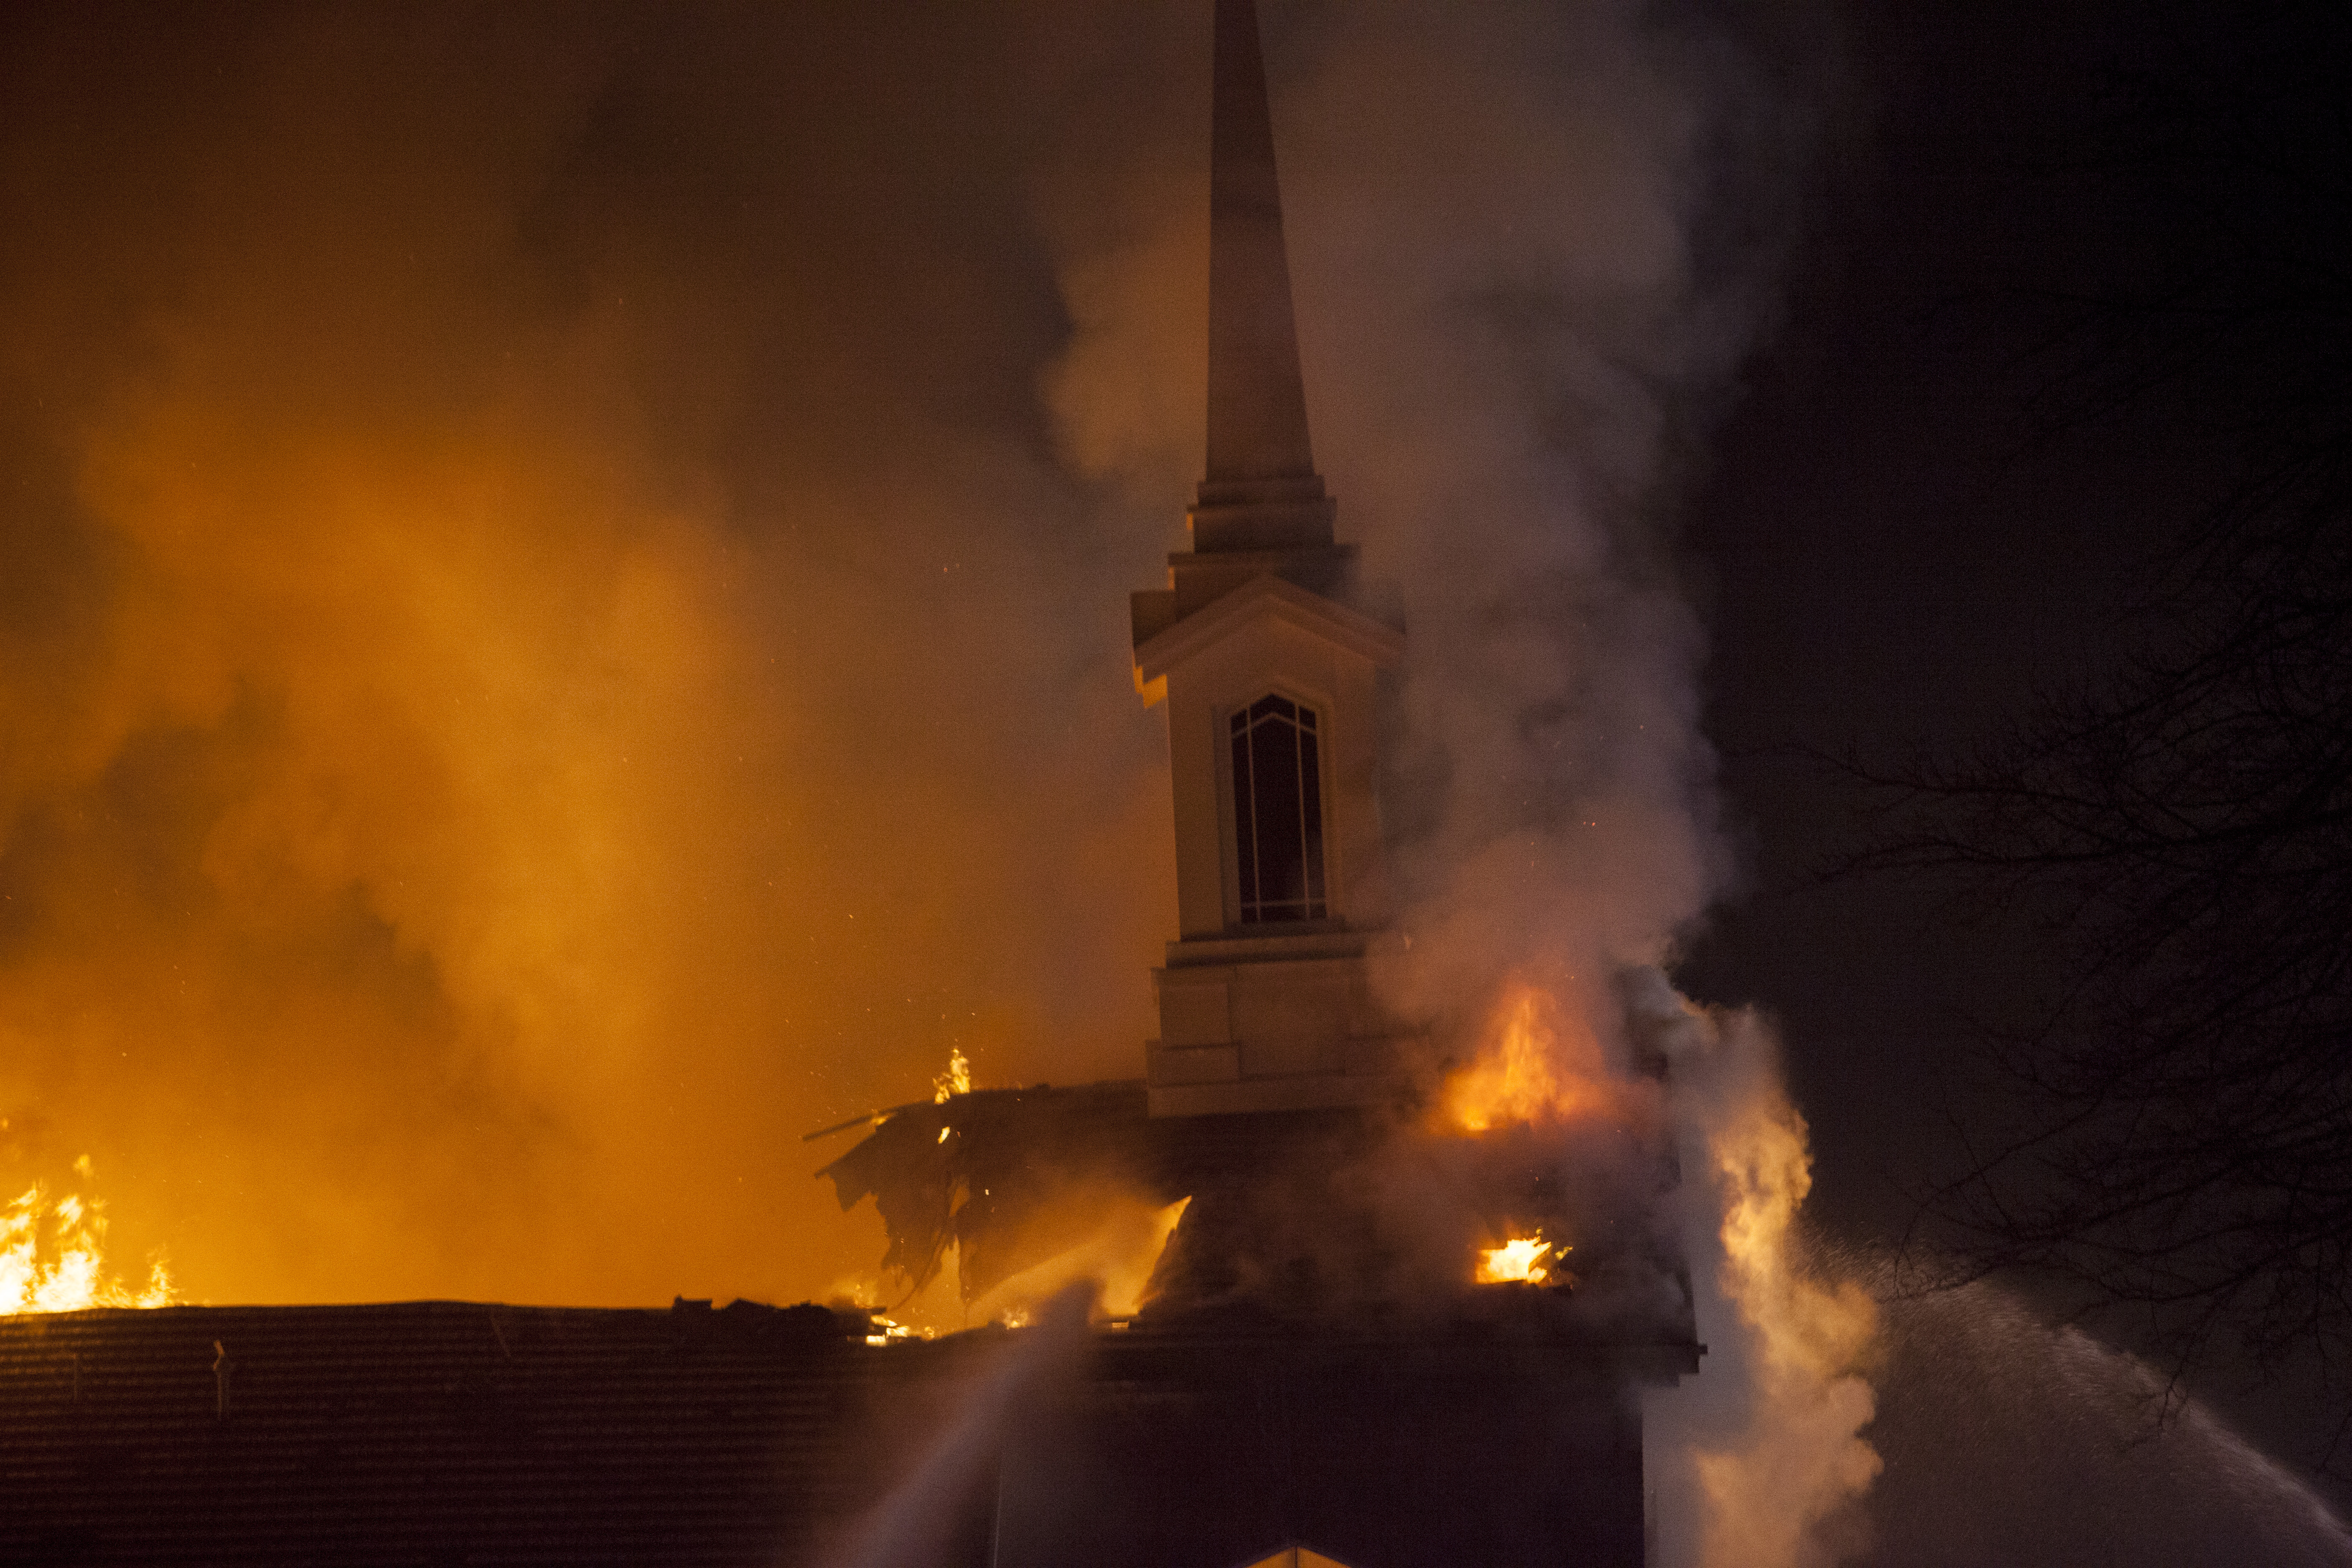 Fire departments from St. George, Utah, and around Washington County work to control a fire at the under-construction St. George East Stake meetinghouse Saturday, Jan. 26, 2019.